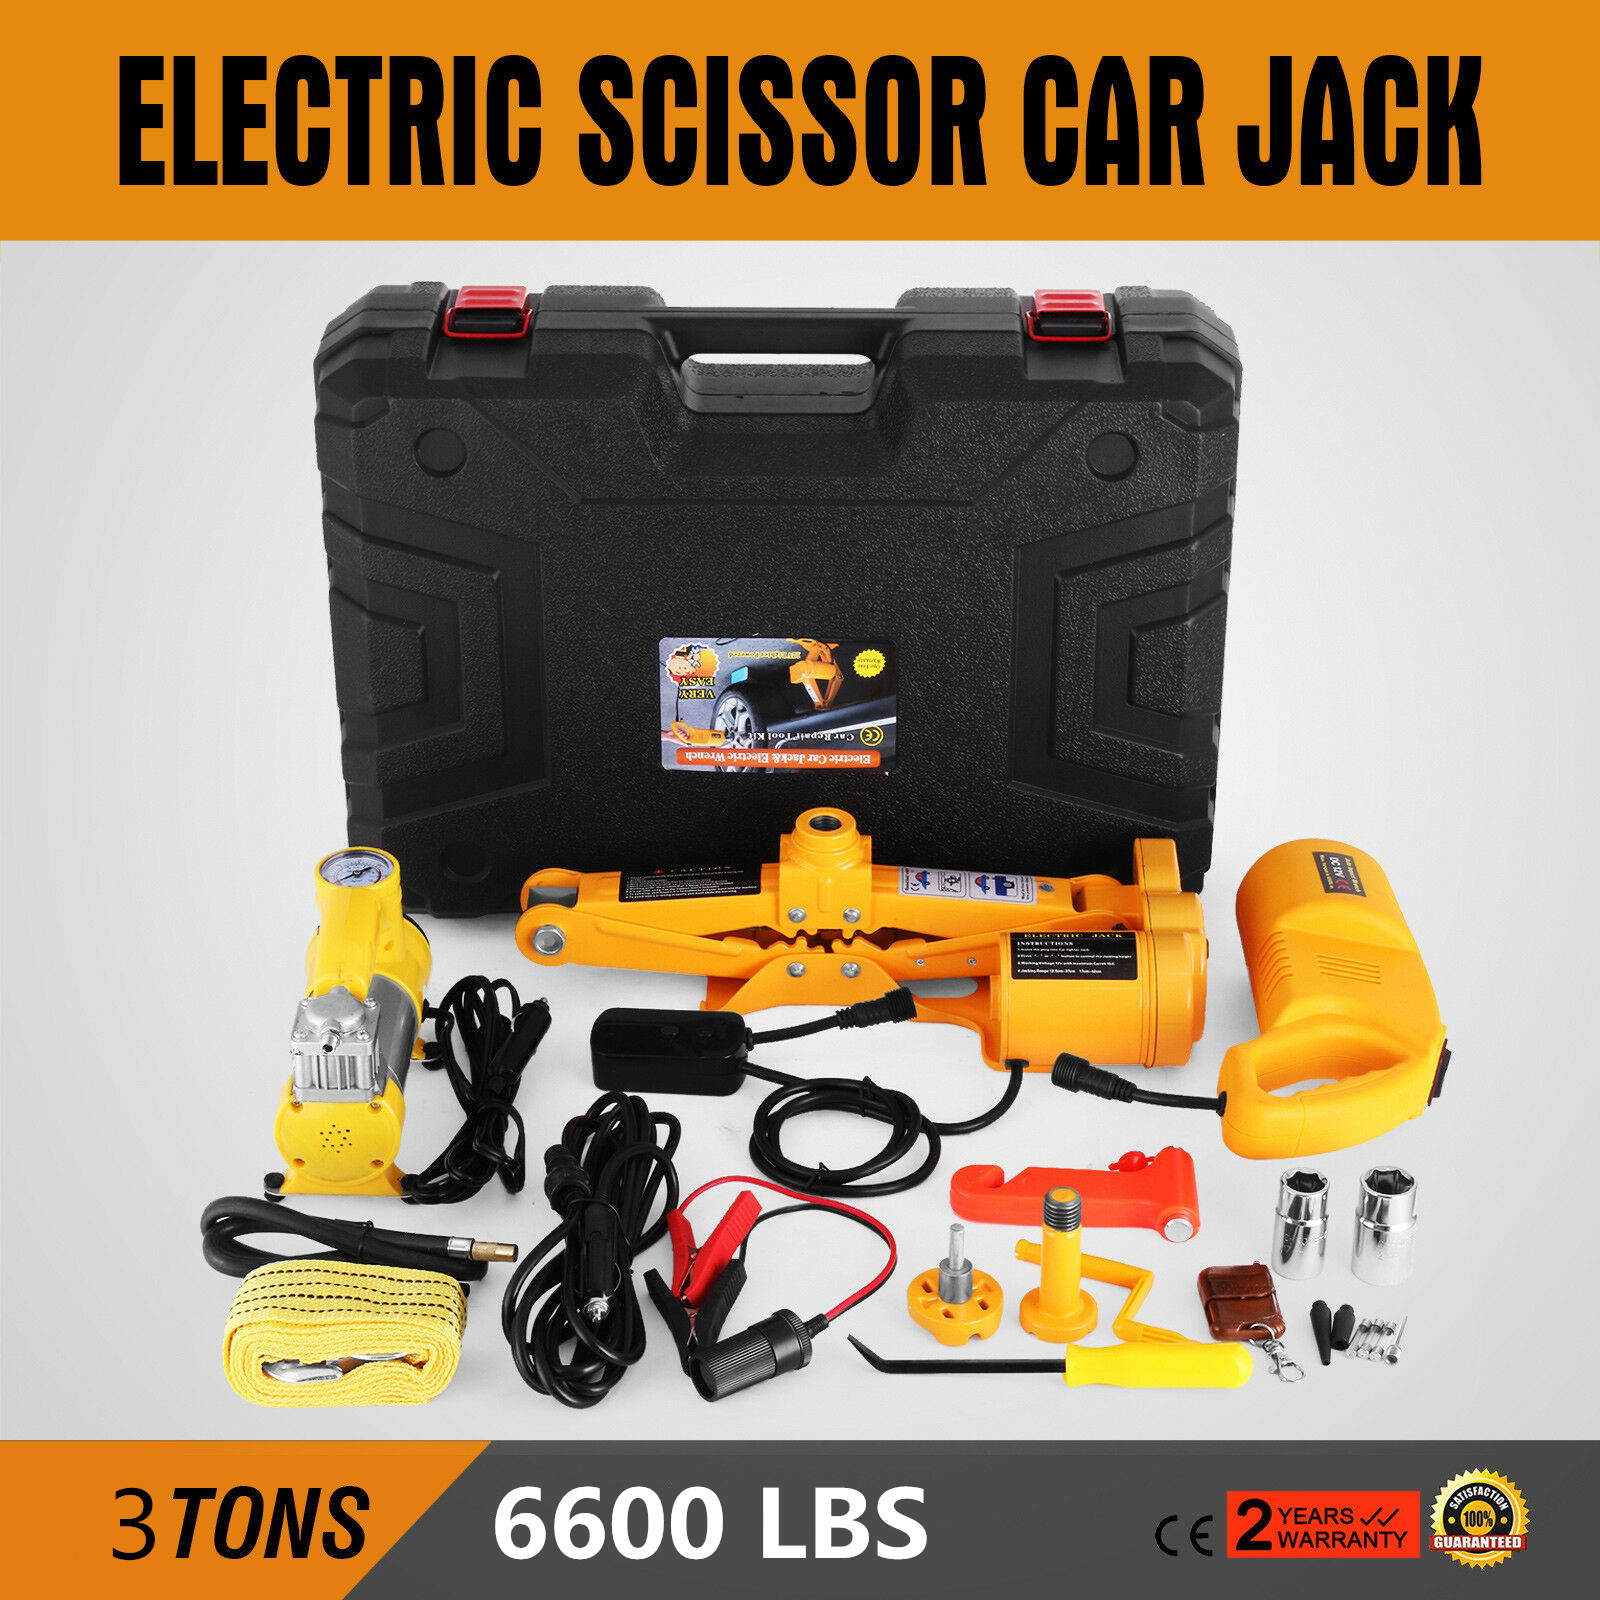 Electric scissor car jack - 3 Ton Scissor Jack - sears com  Halfords